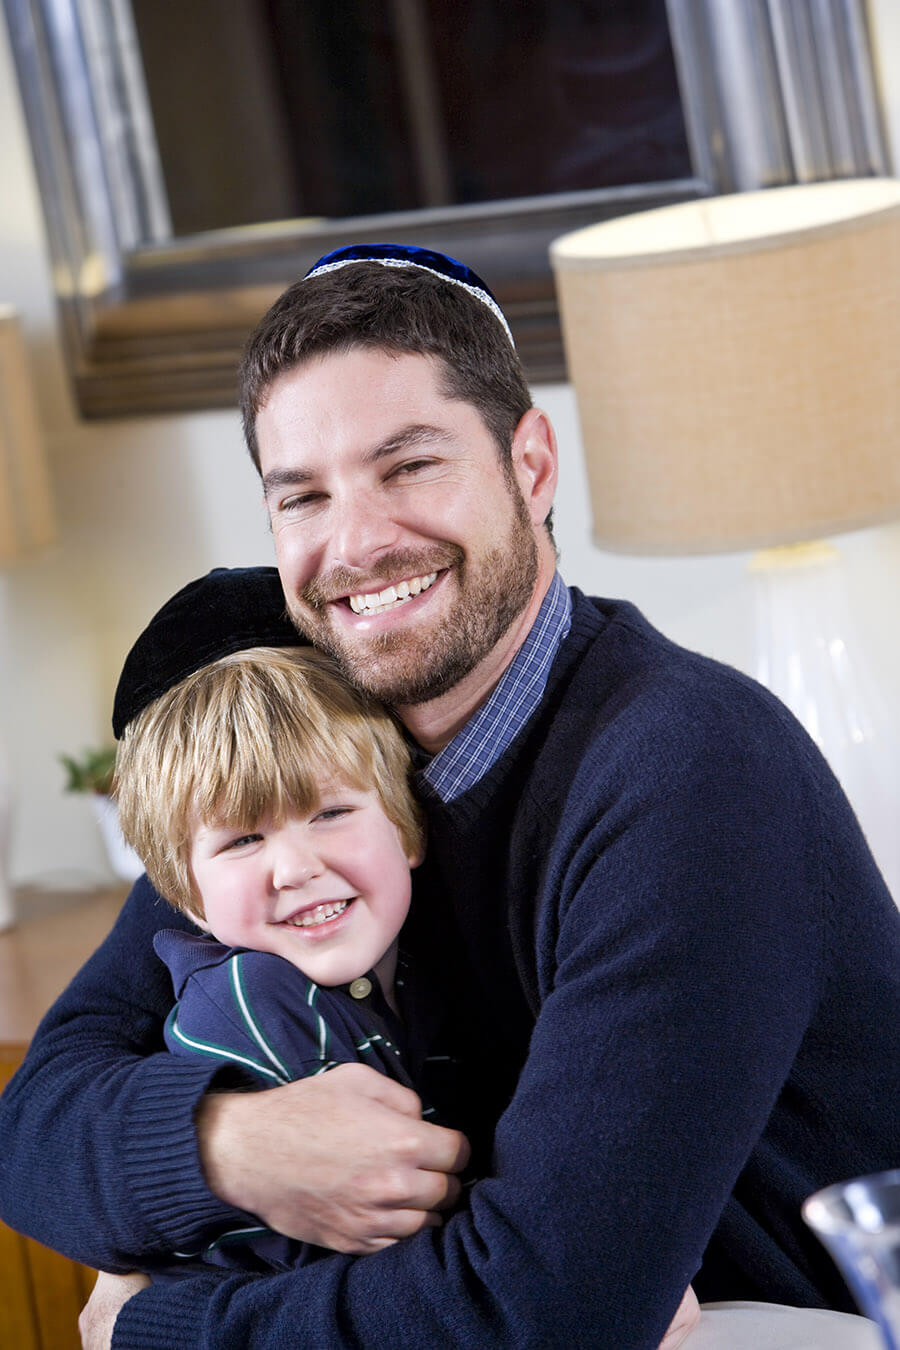 A jewish father and son